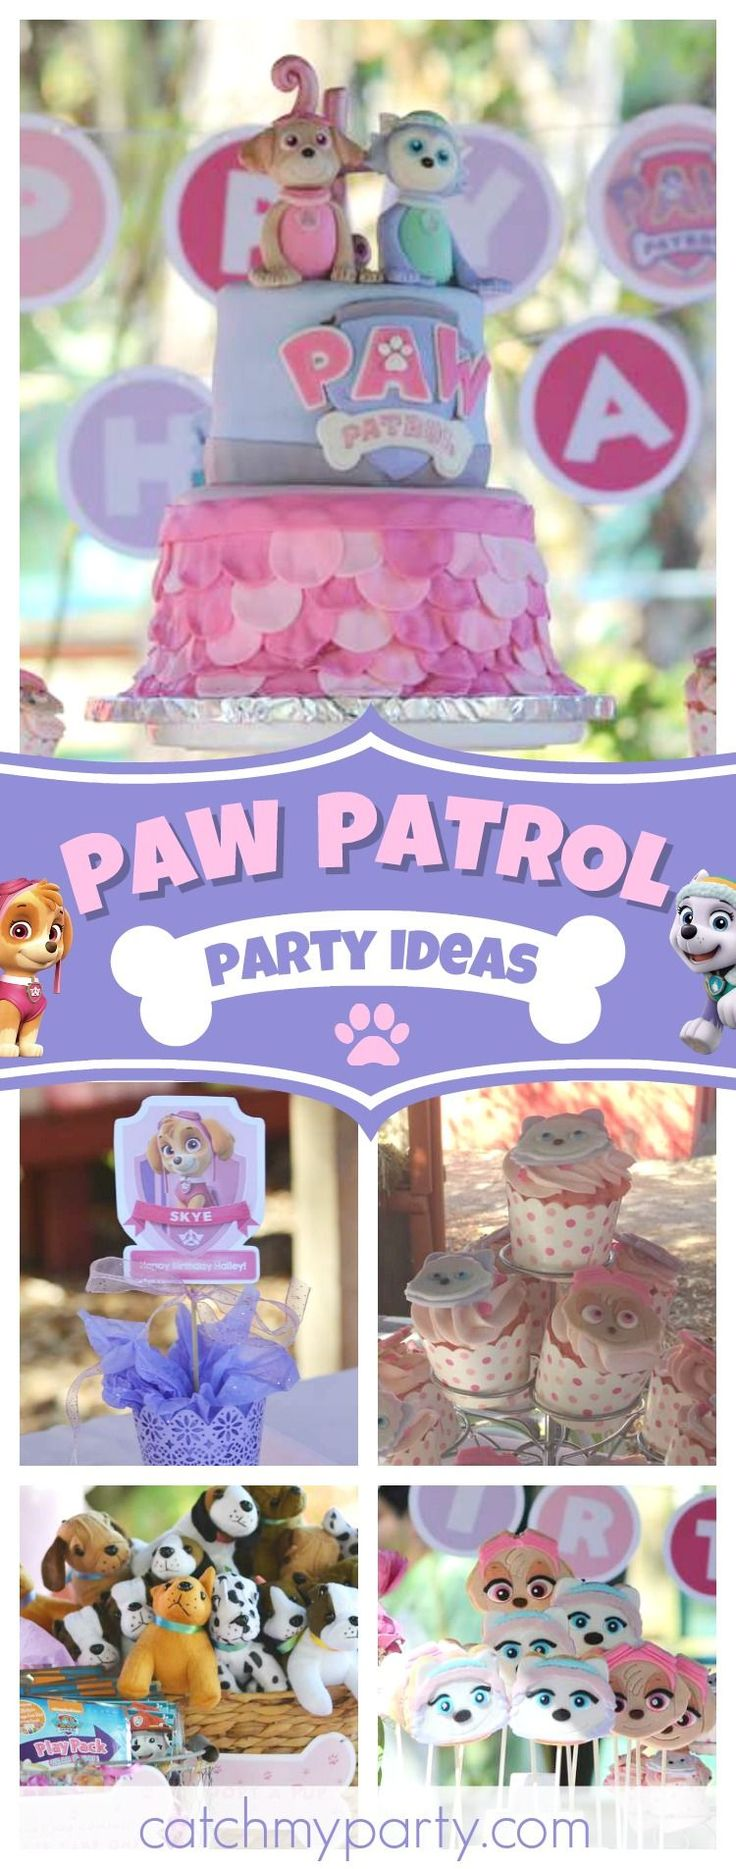 Check out this fun pink Paw Patrol birthday party! The cookies are amazing!! See more party ideas and share yours at CatchMyParty.com #catchmyparty #partyideas #pawpatrolbirthdayparty #skye